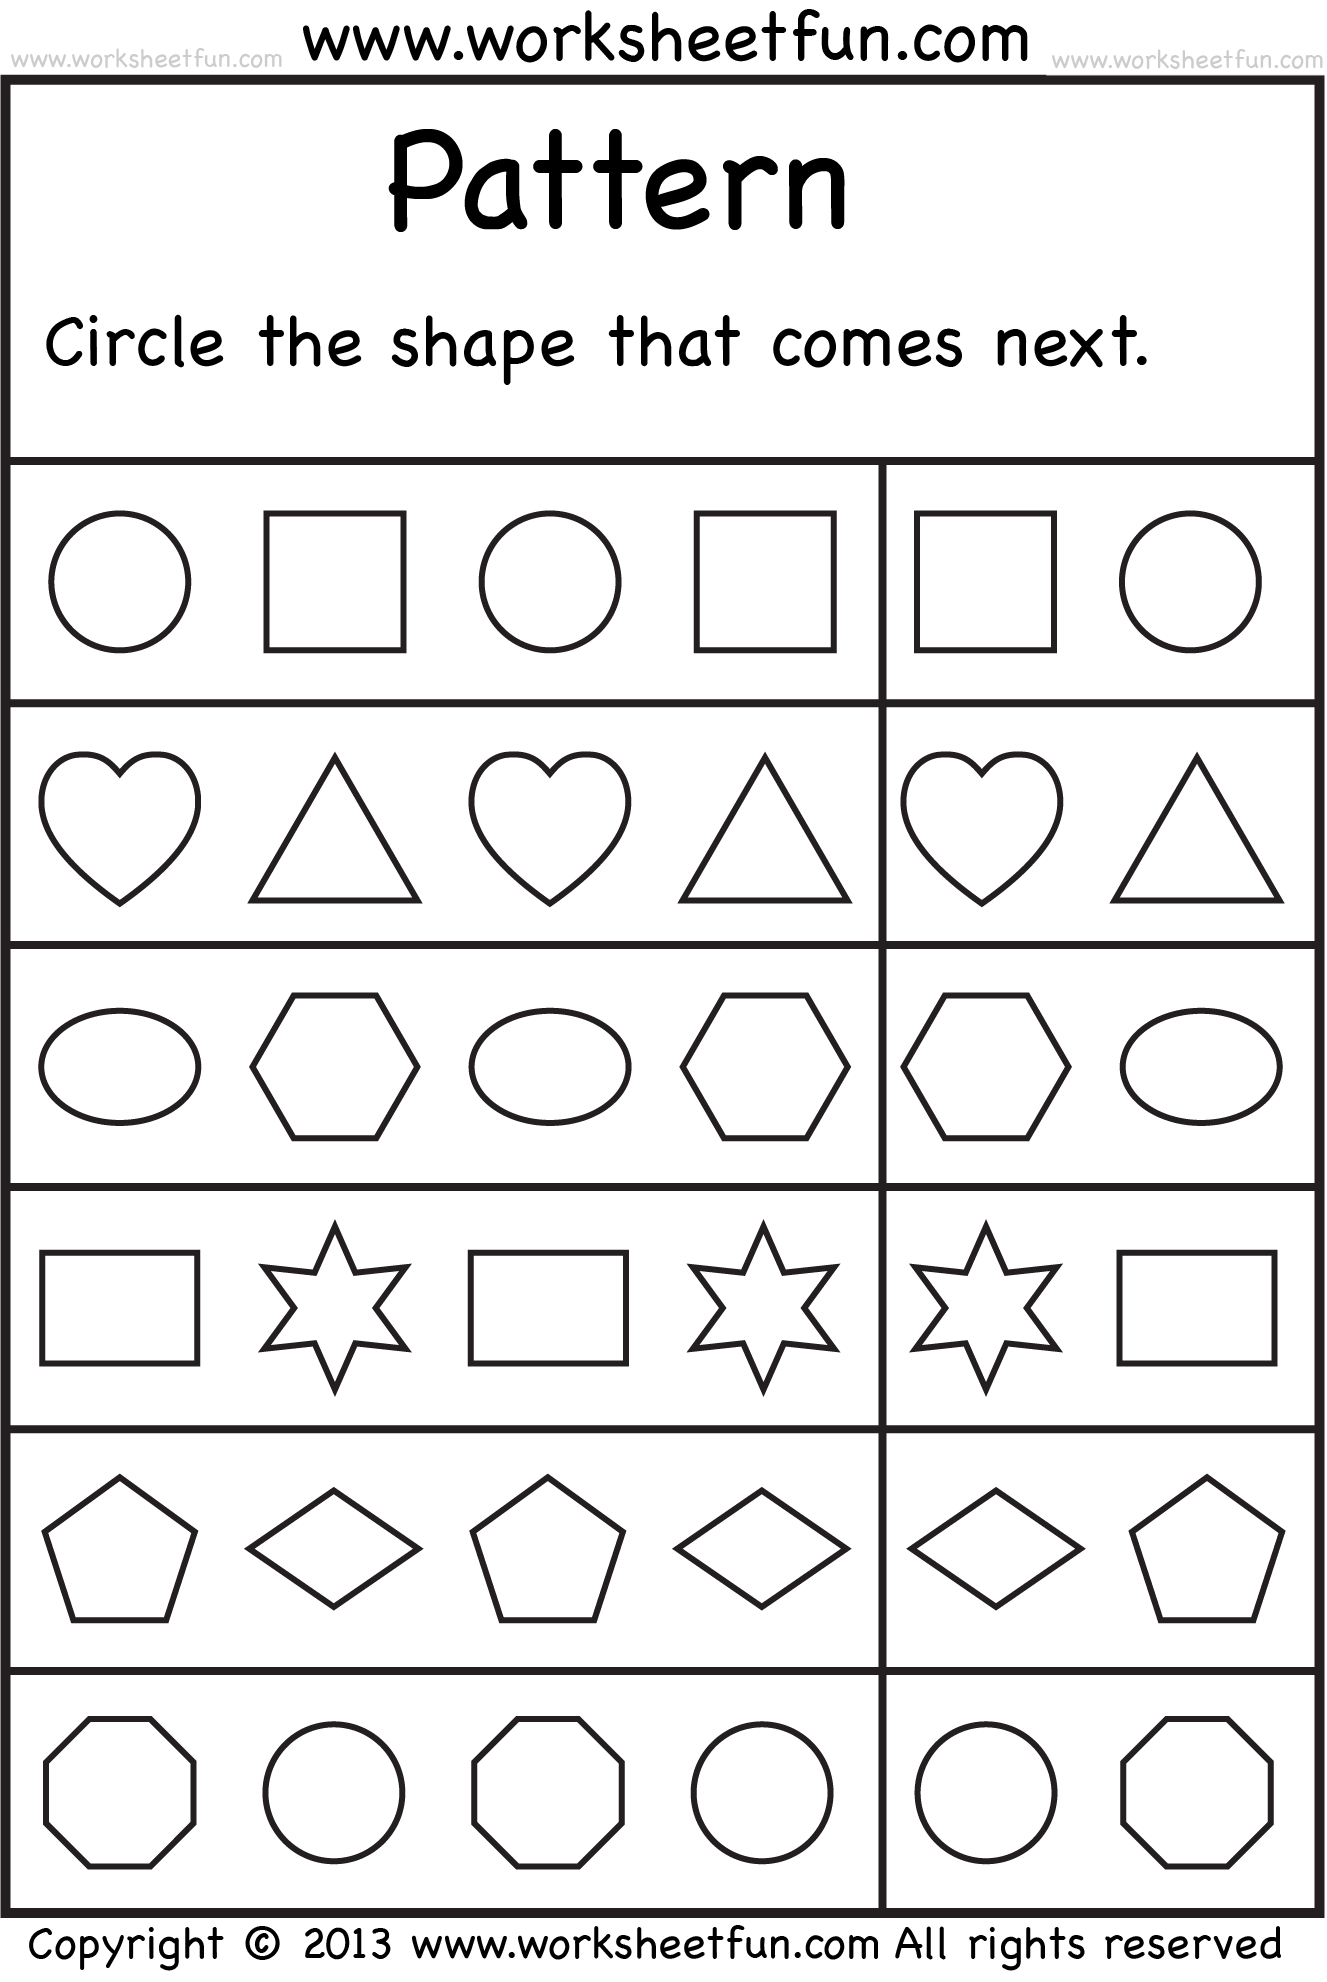 Weirdmailus  Marvellous  Images About School Worksheets On Pinterest  Number Words  With Exquisite  Images About School Worksheets On Pinterest  Number Words Alphabet Worksheets And Free Printable Kindergarten Worksheets With Enchanting Number Trace Worksheets Also Math Worksheets Pictures In Addition Value Of Numbers Worksheet And Excel Macro Worksheet As Well As Grade  Writing Worksheets Additionally Worksheet On Polygons From Pinterestcom With Weirdmailus  Exquisite  Images About School Worksheets On Pinterest  Number Words  With Enchanting  Images About School Worksheets On Pinterest  Number Words Alphabet Worksheets And Free Printable Kindergarten Worksheets And Marvellous Number Trace Worksheets Also Math Worksheets Pictures In Addition Value Of Numbers Worksheet From Pinterestcom